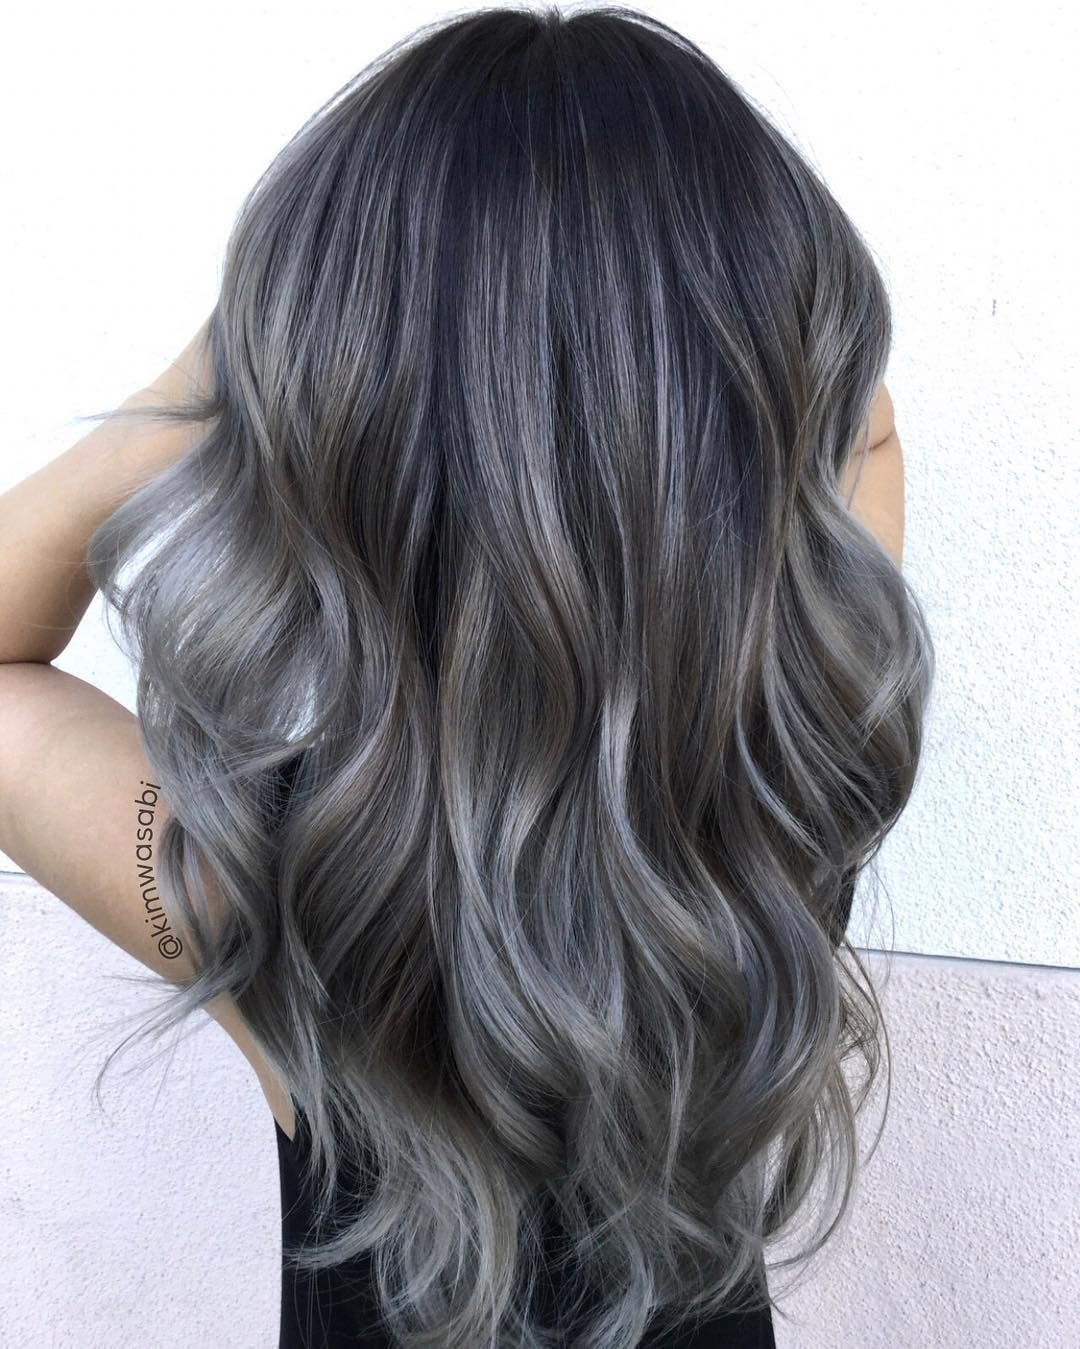 Charcoal Hair The New Low Key Trend On Instagram In 2018 Hairdo